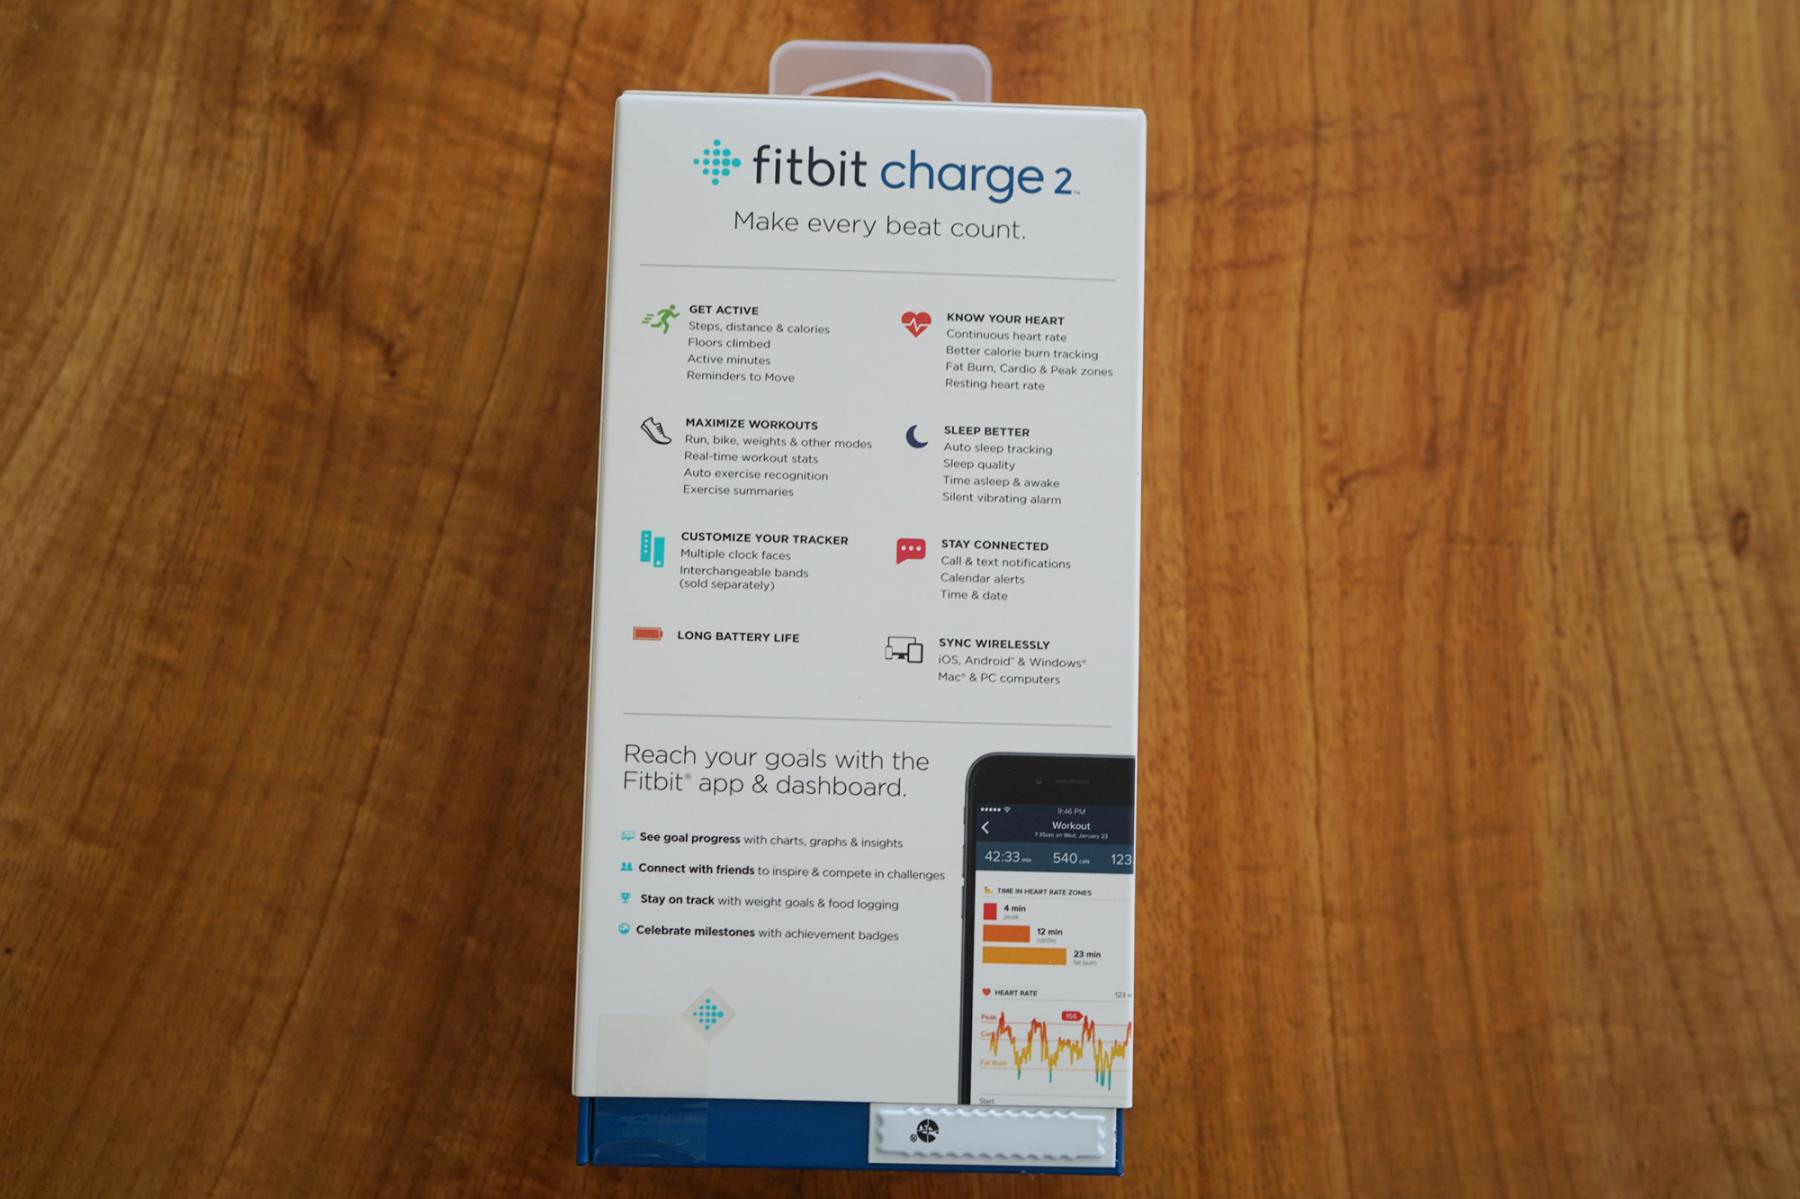 Fitbit Charge 2 back of box